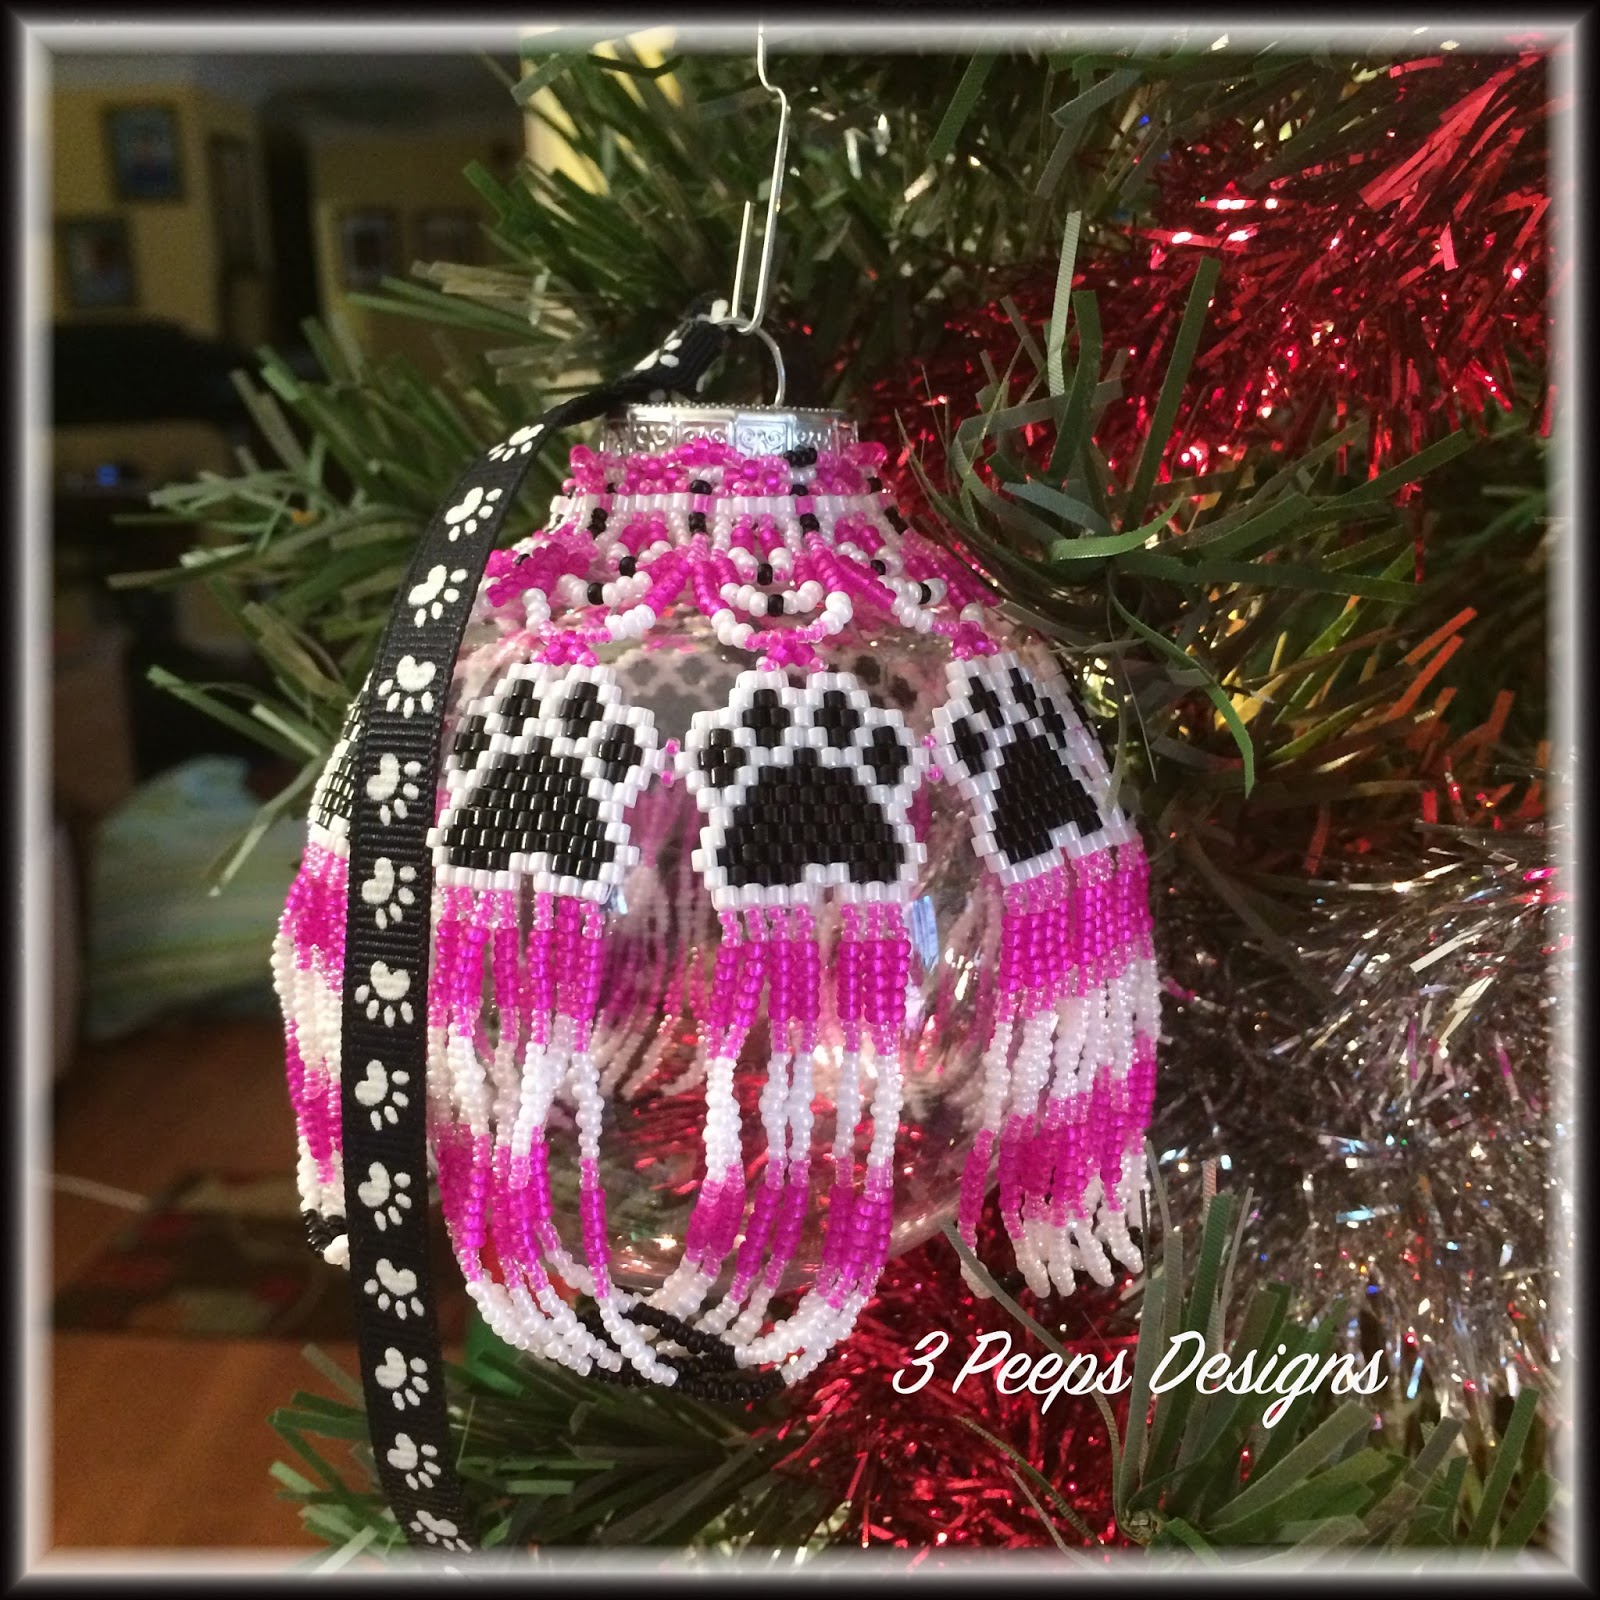 3 peeps designs january 28 2016 time flies part 2 the beaded